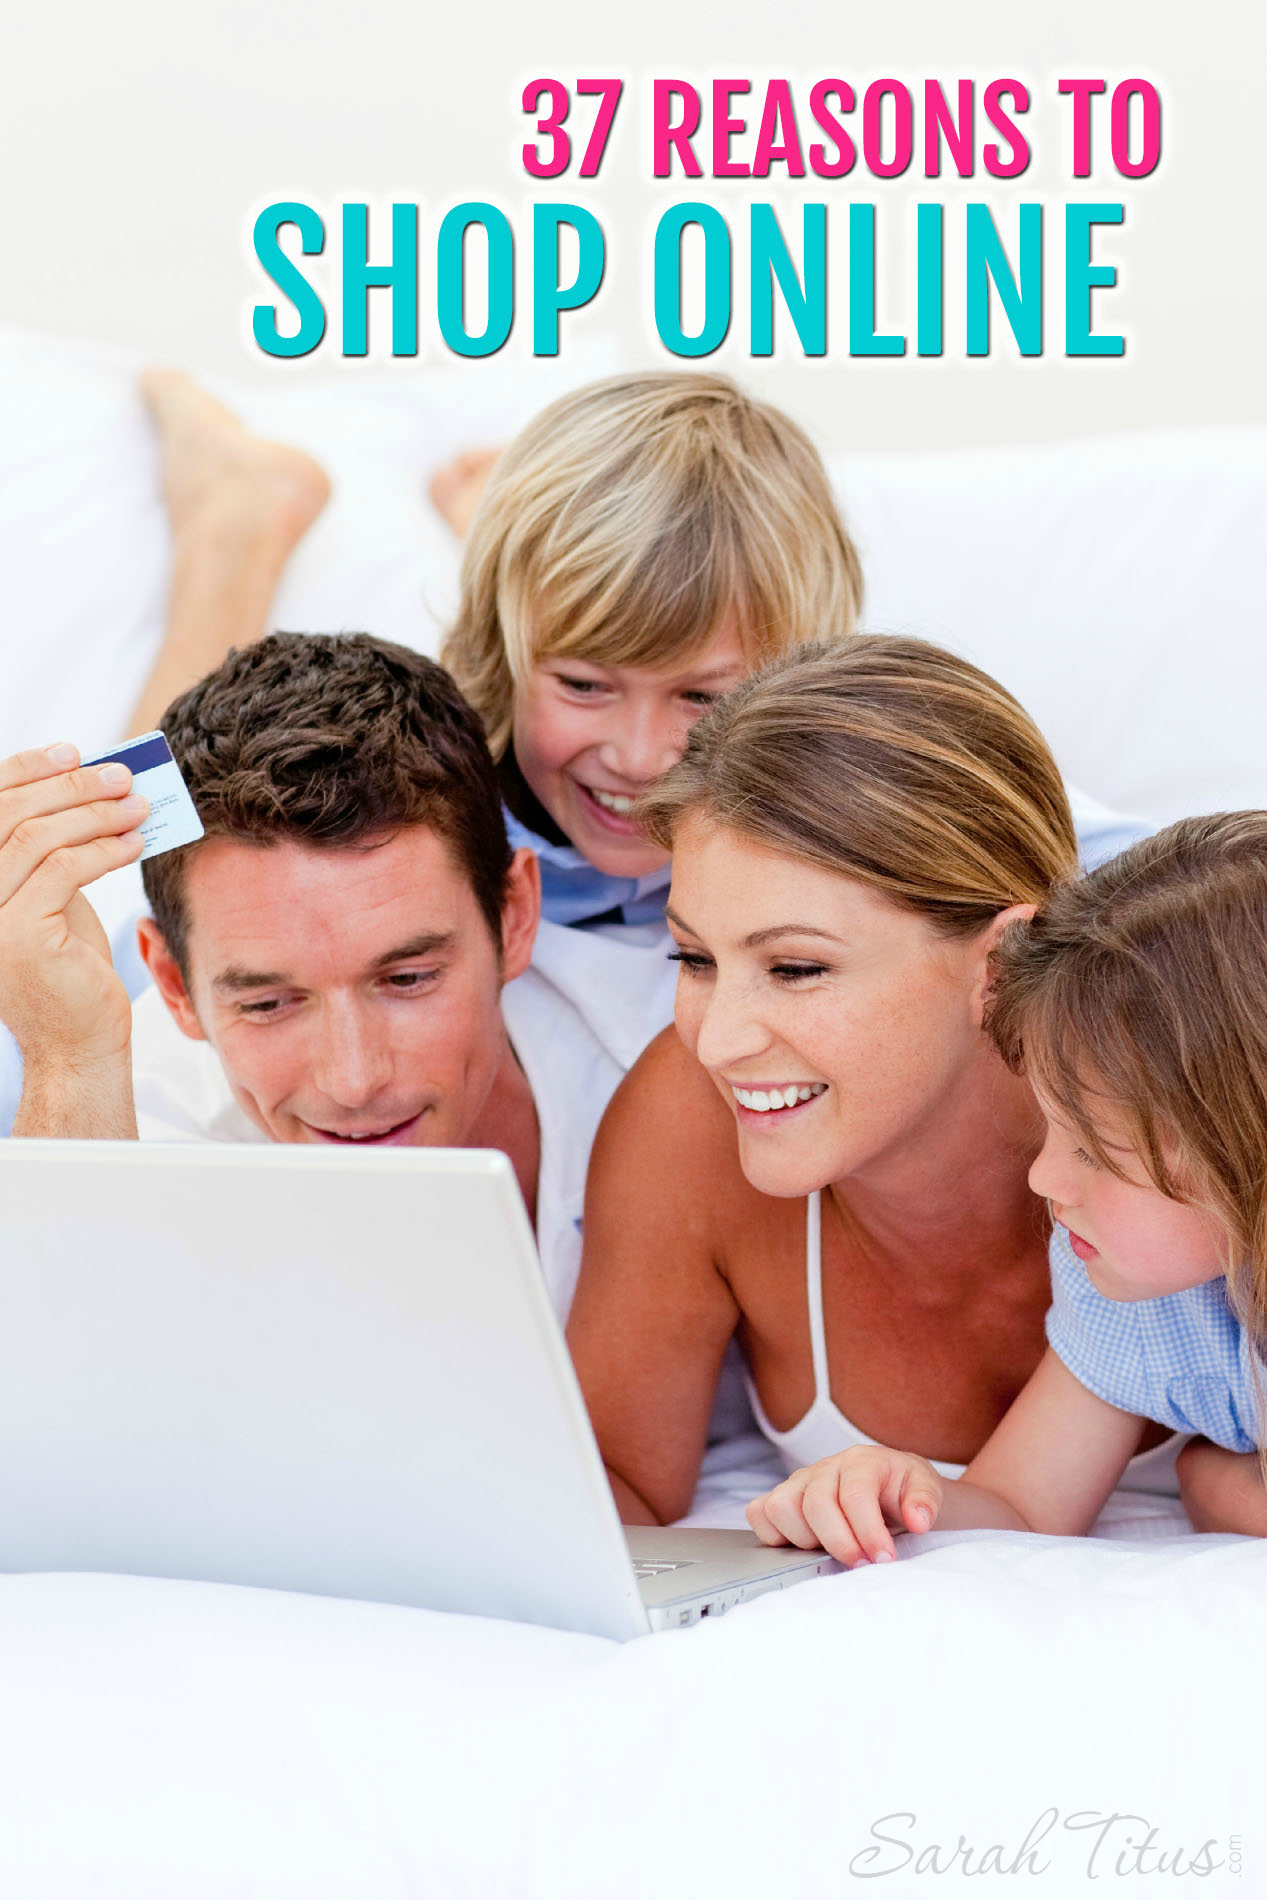 I live the good life on only $18k/year and rarely ever shop in stores. Why should I when I get free shipping, delivery to my door, and cheaper prices online? Here's 37 reasons to shop online!